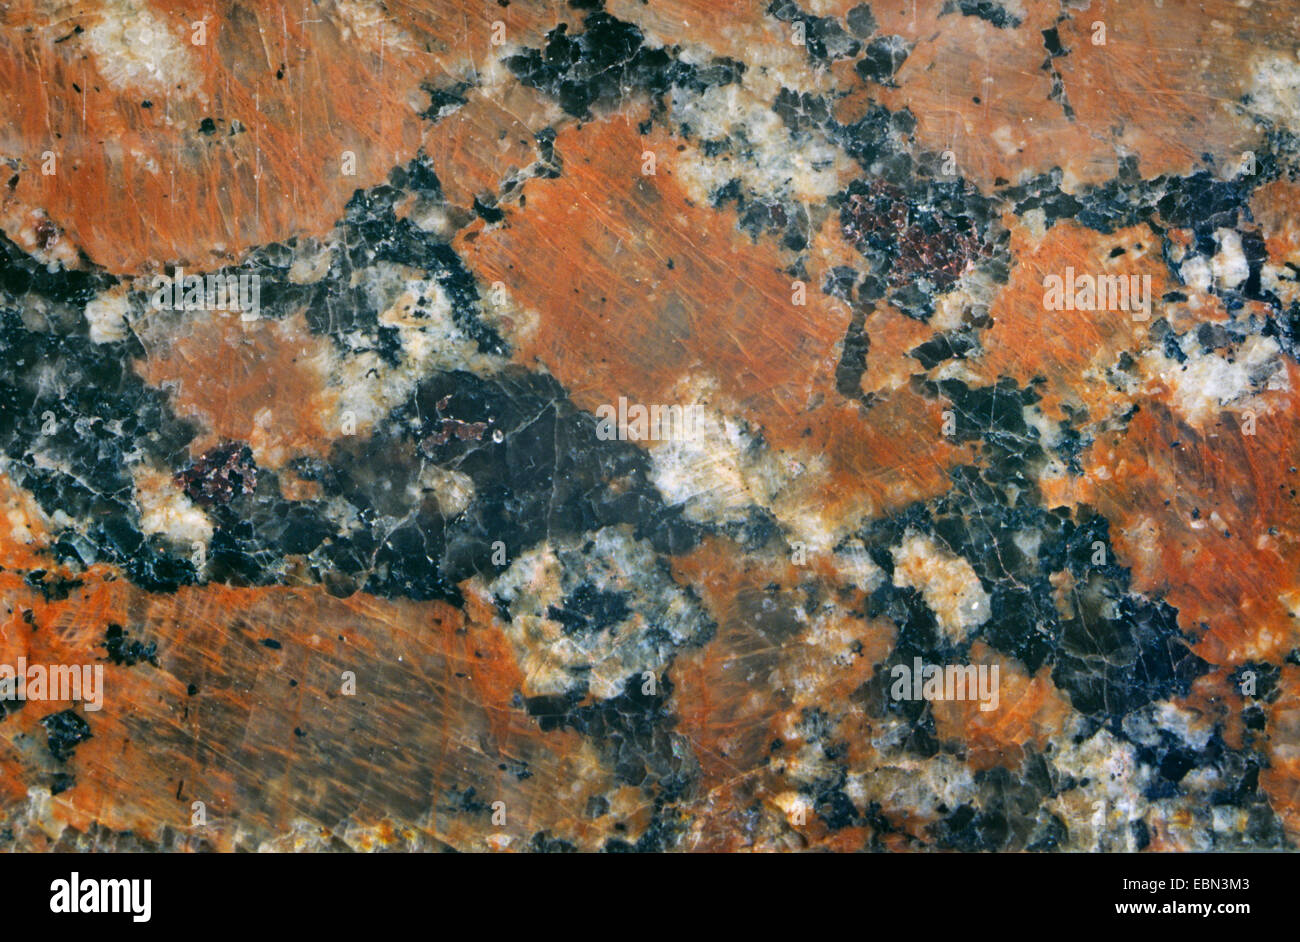 granite from Ukraine, Ukraine - Stock Image